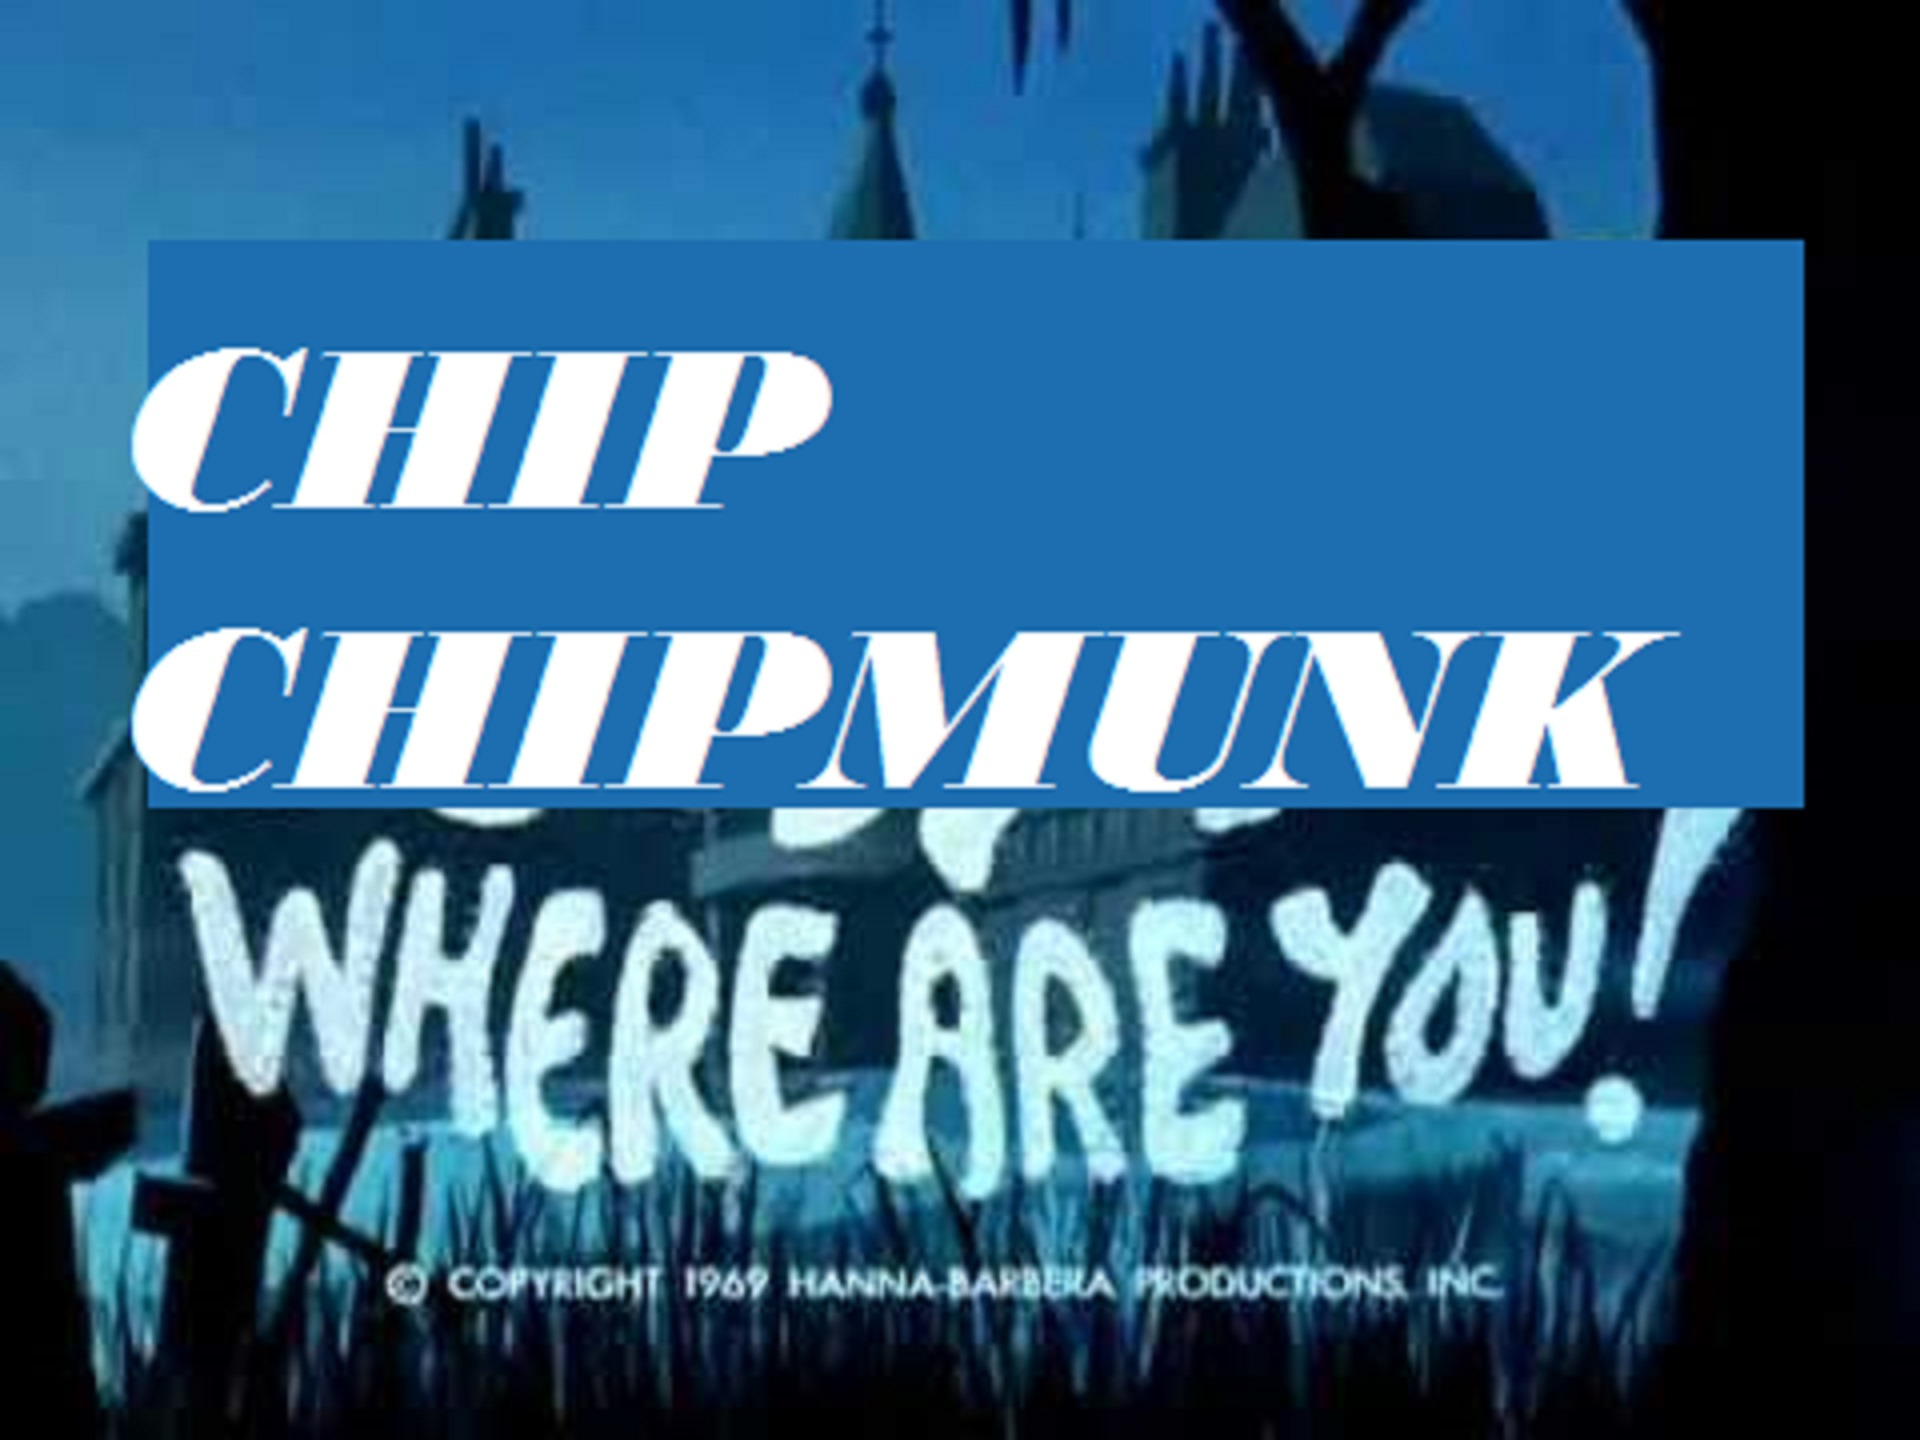 Chip-ChipMunk, Where Are You!